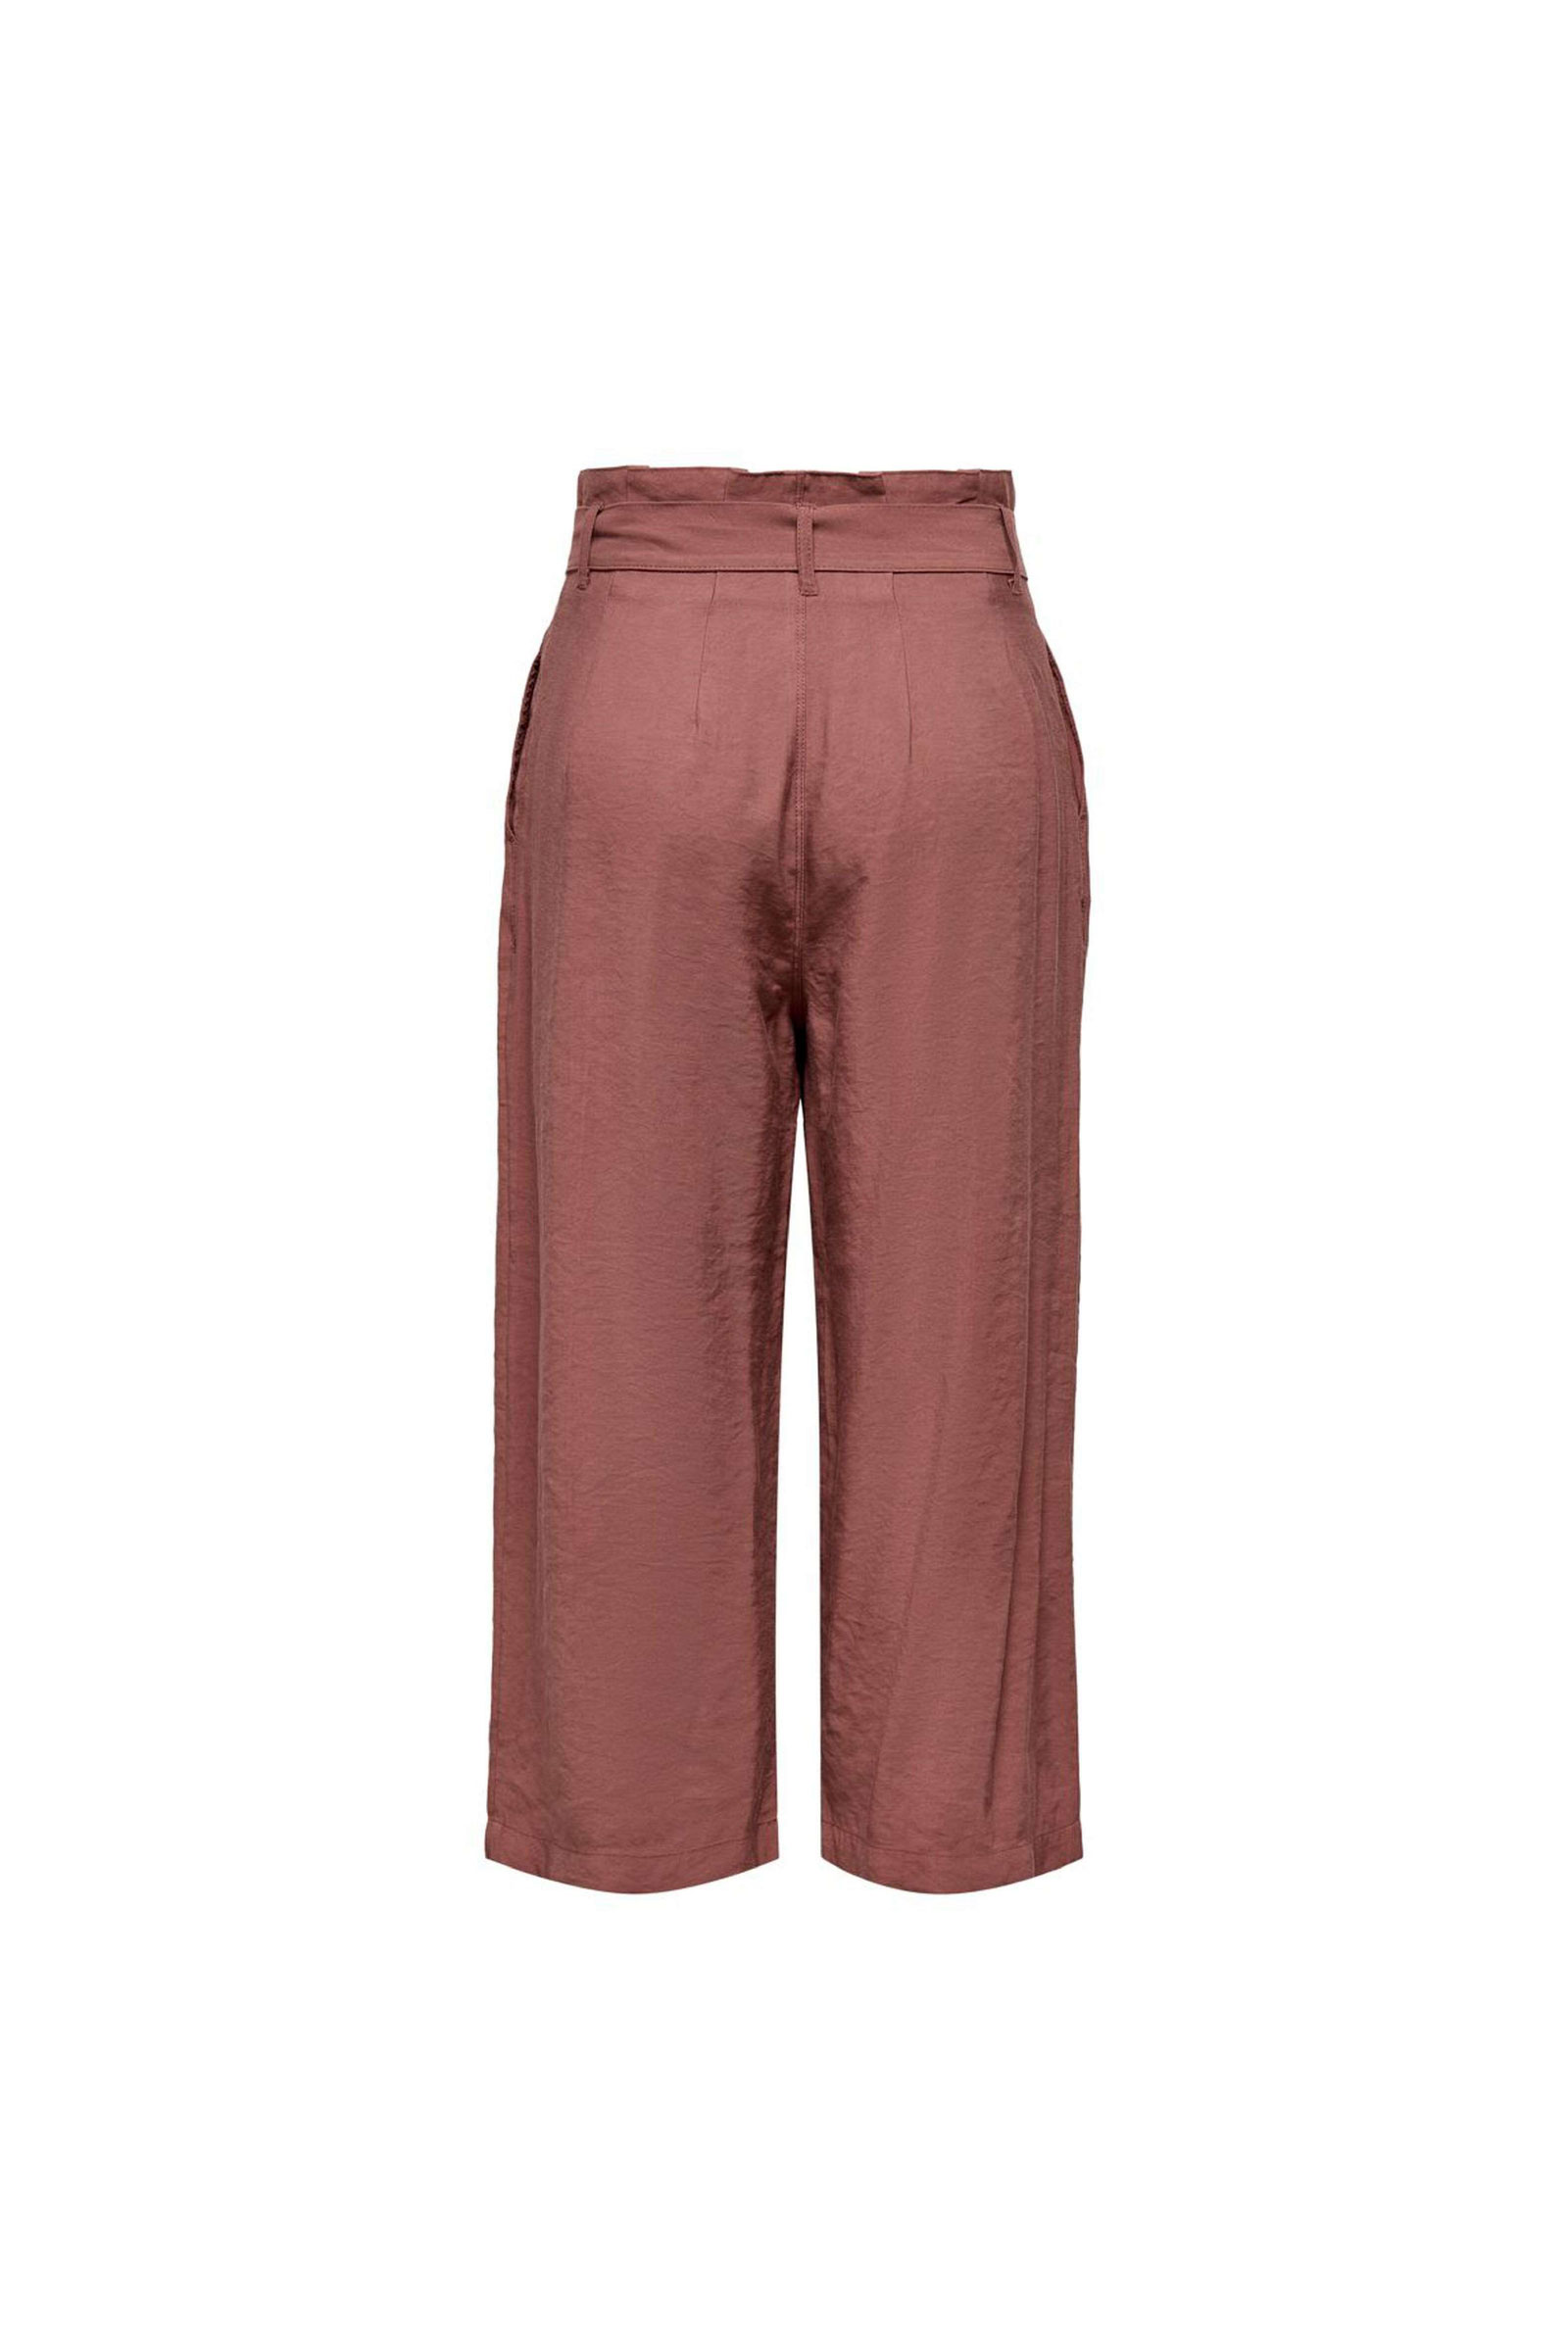 ONLY pantalone Donna Apple Butter ONLY | Trousers | 15198918Apple Butter